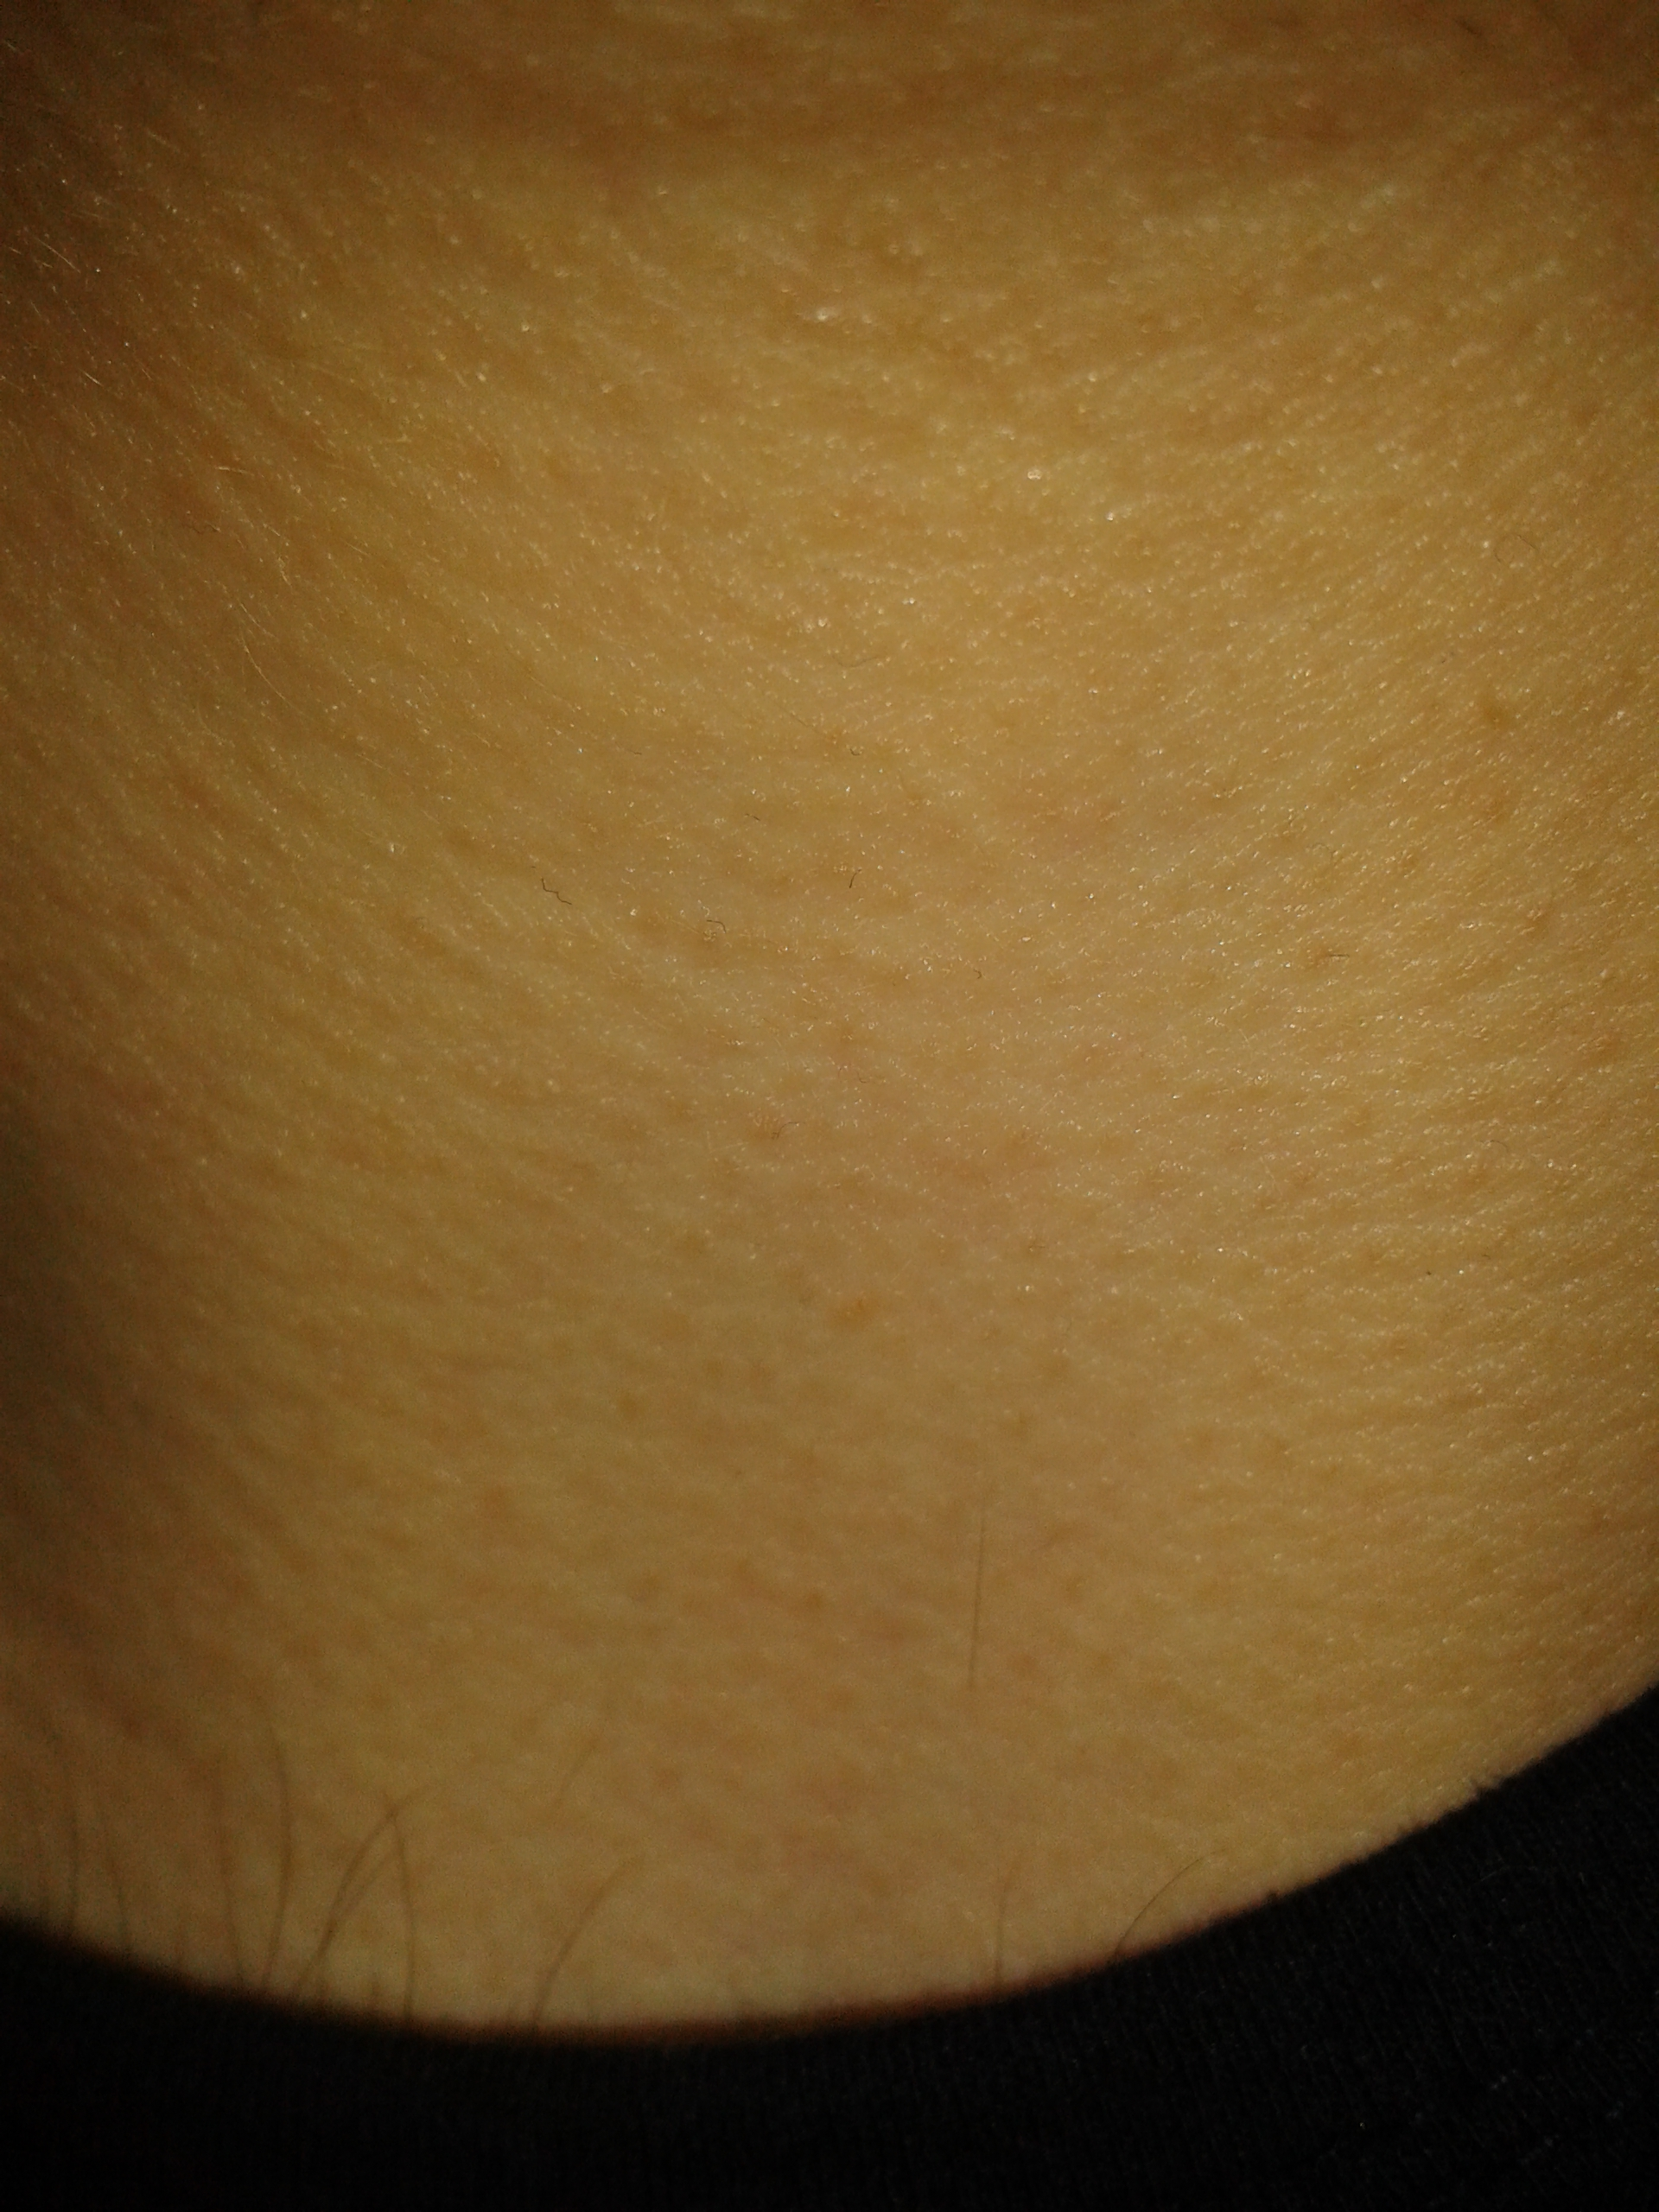 Permanent skin-colored raised bumps